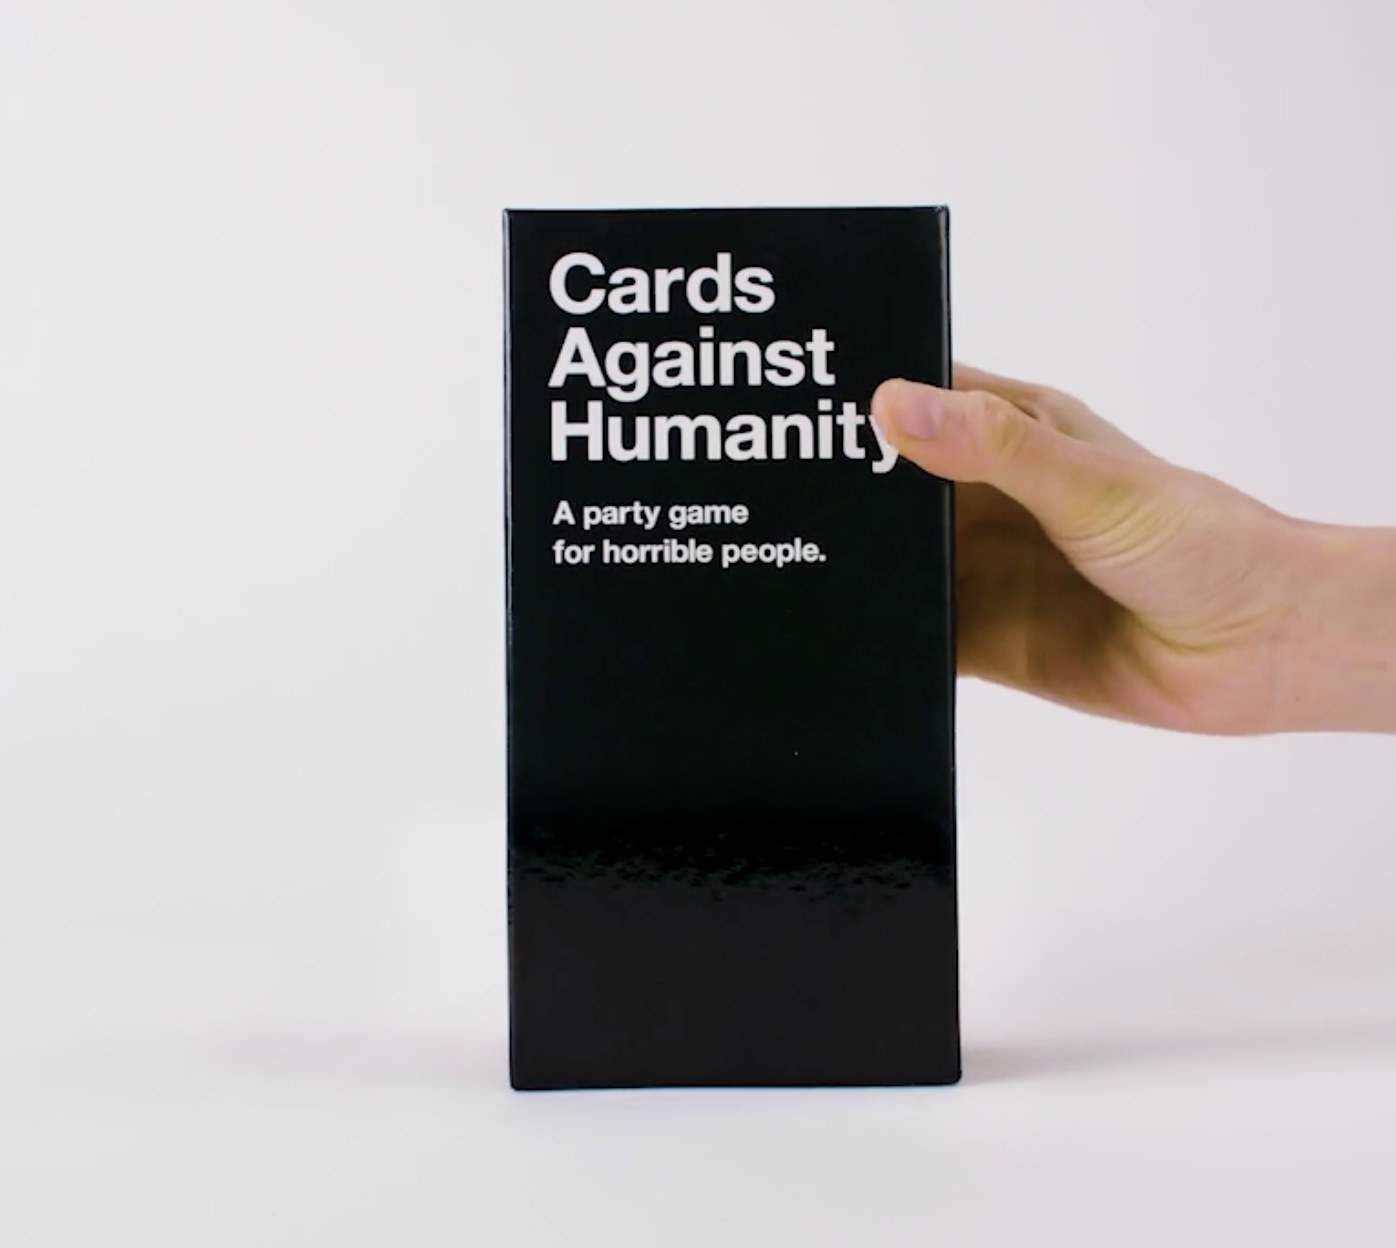 Person is holding the box of Cards Against Humanity